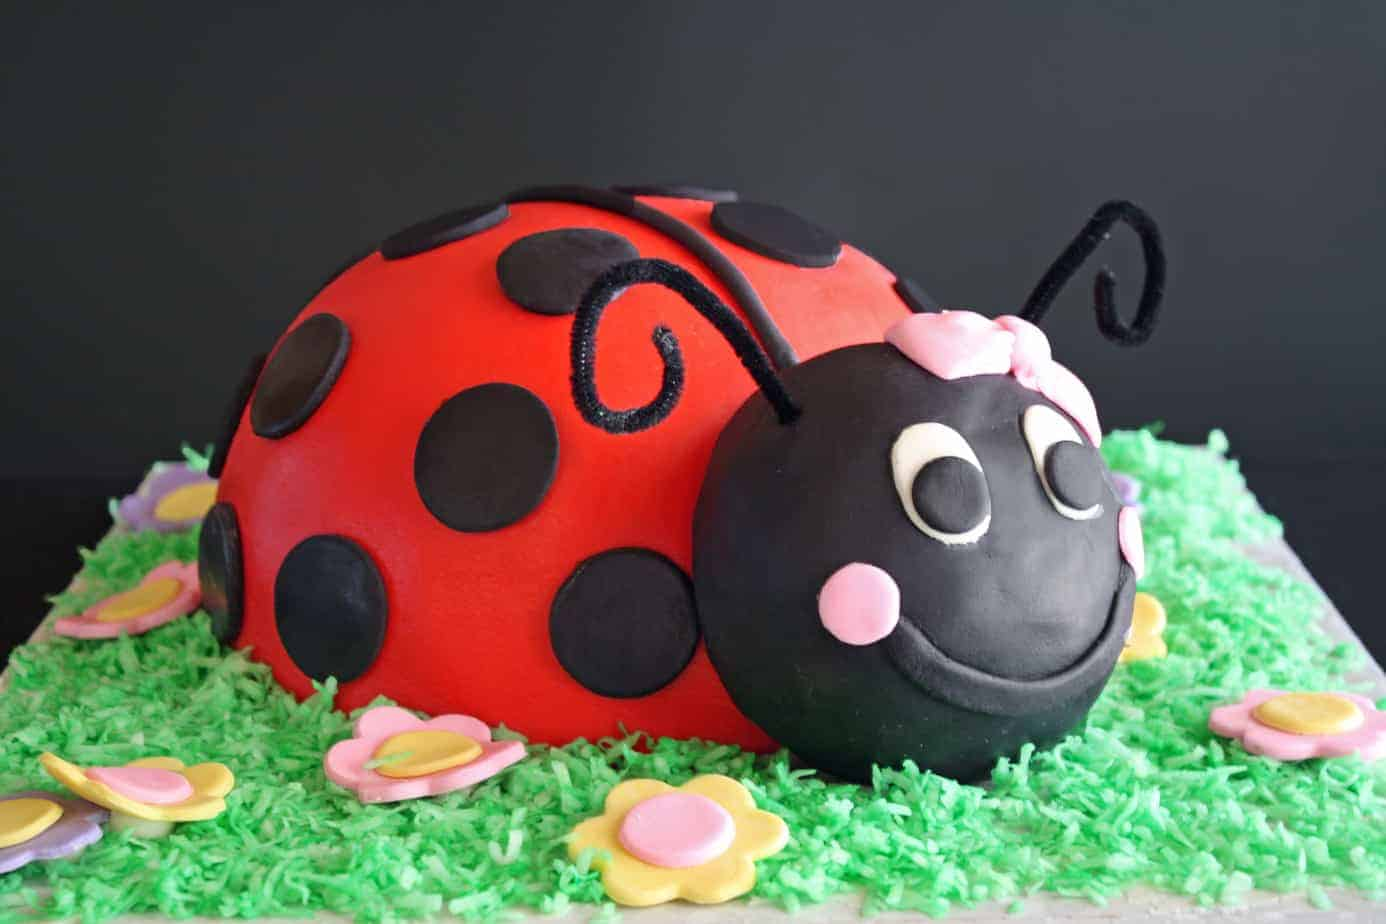 How To Make A Ladybug Cake From Cupcakes